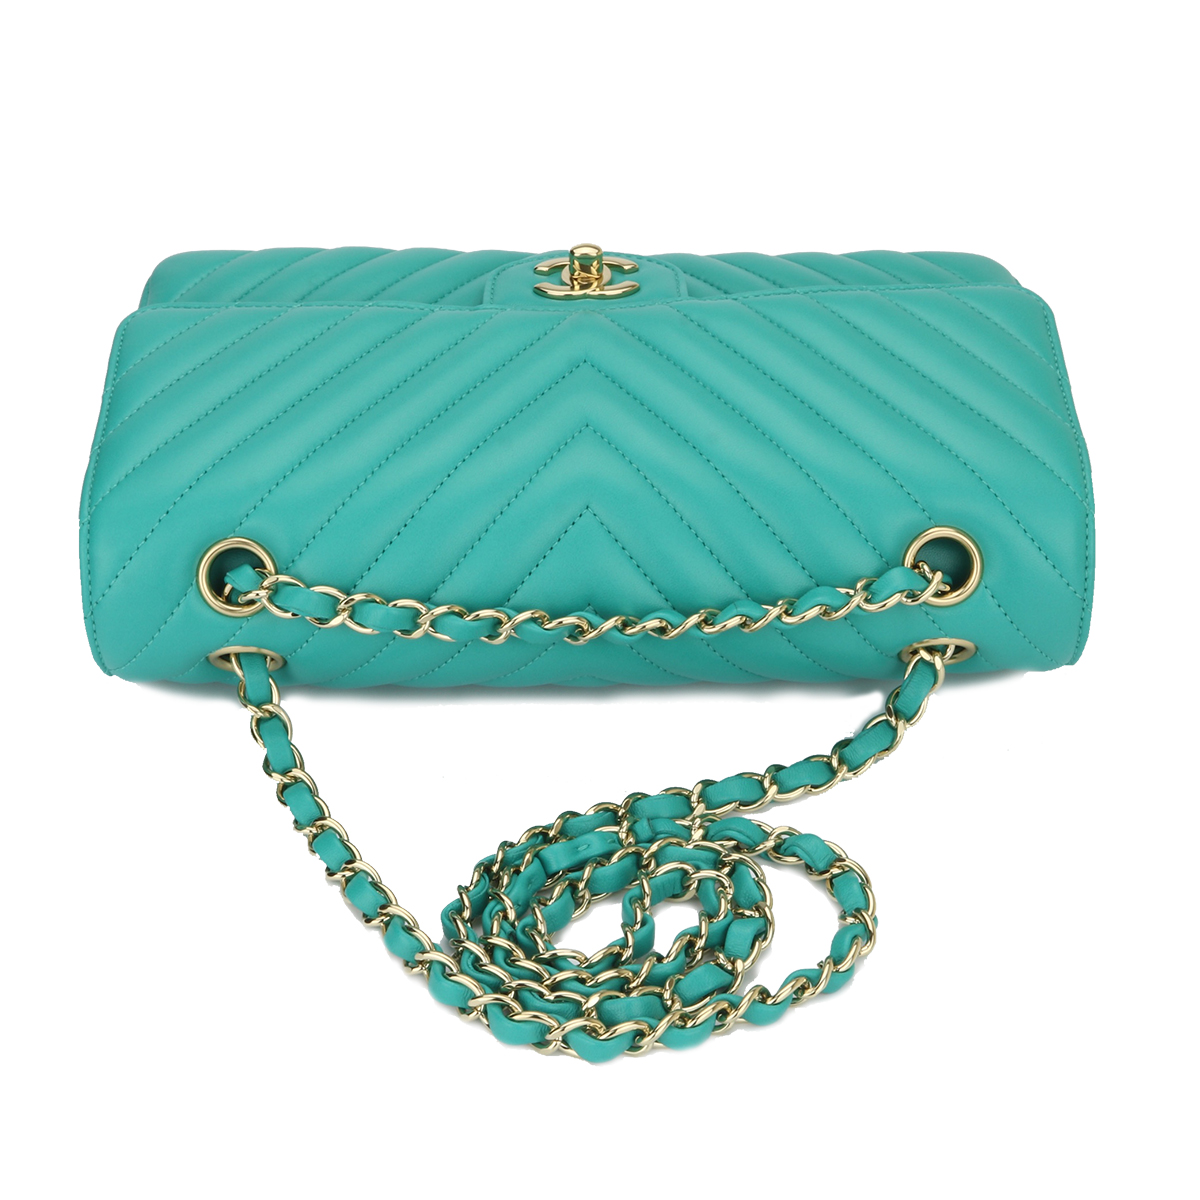 425e11b435d1 Home/Chanel/CHANEL Classic Double Flap Medium Turquoise Lambskin Chevron  Champagne Gold Hardware 2017. ; 